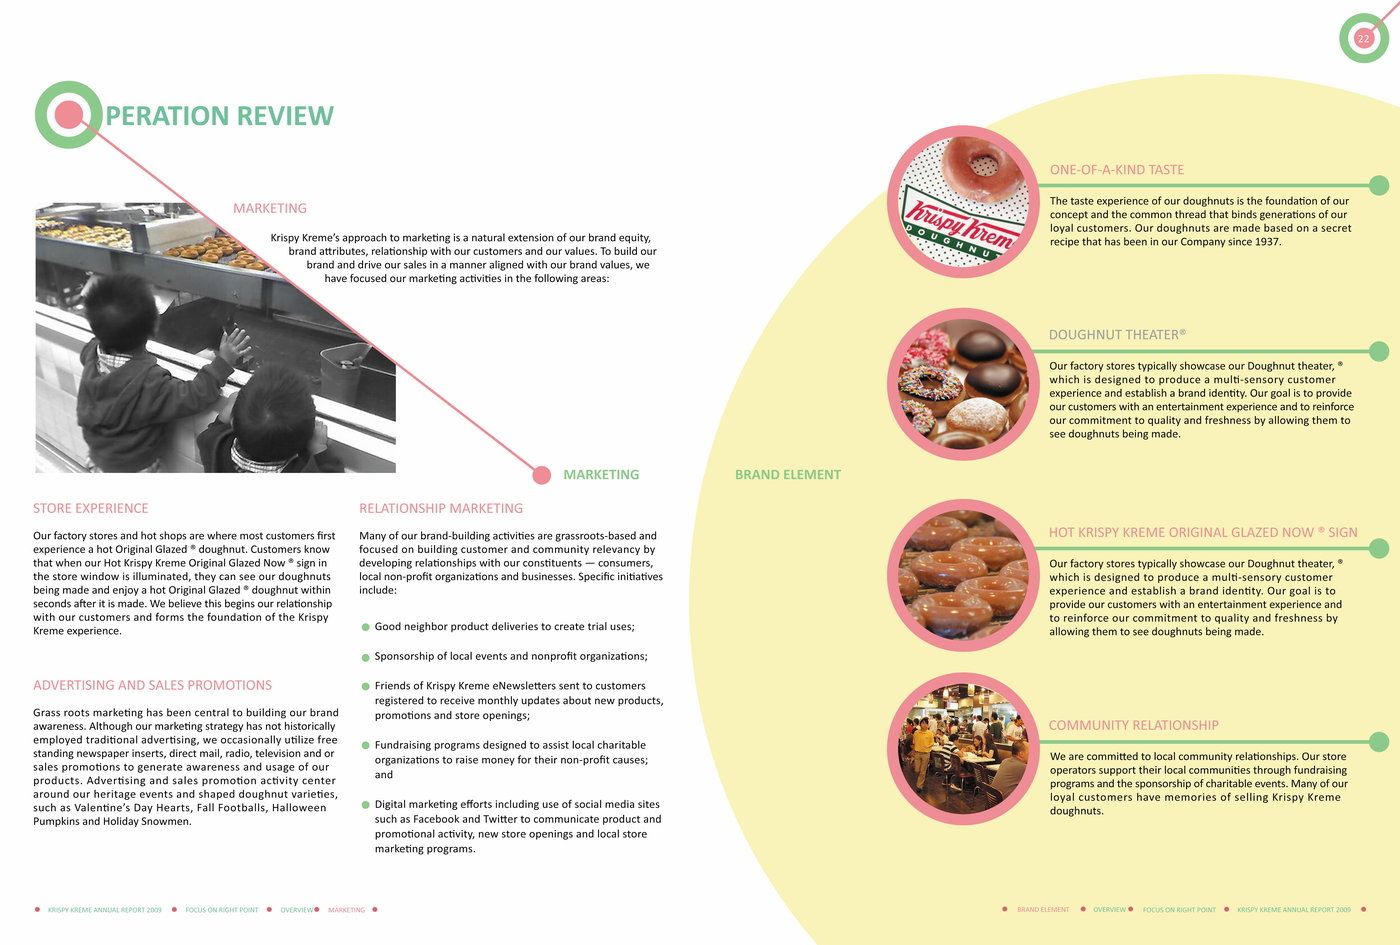 preparing a strategy evaluation report for krispy kreme Krispy kreme is a great example of a company with a superior product (yum) and a weak execution strategy as you have laid out very clearly, its strategy of entangling its retail and wholesale businesses may be one cause.